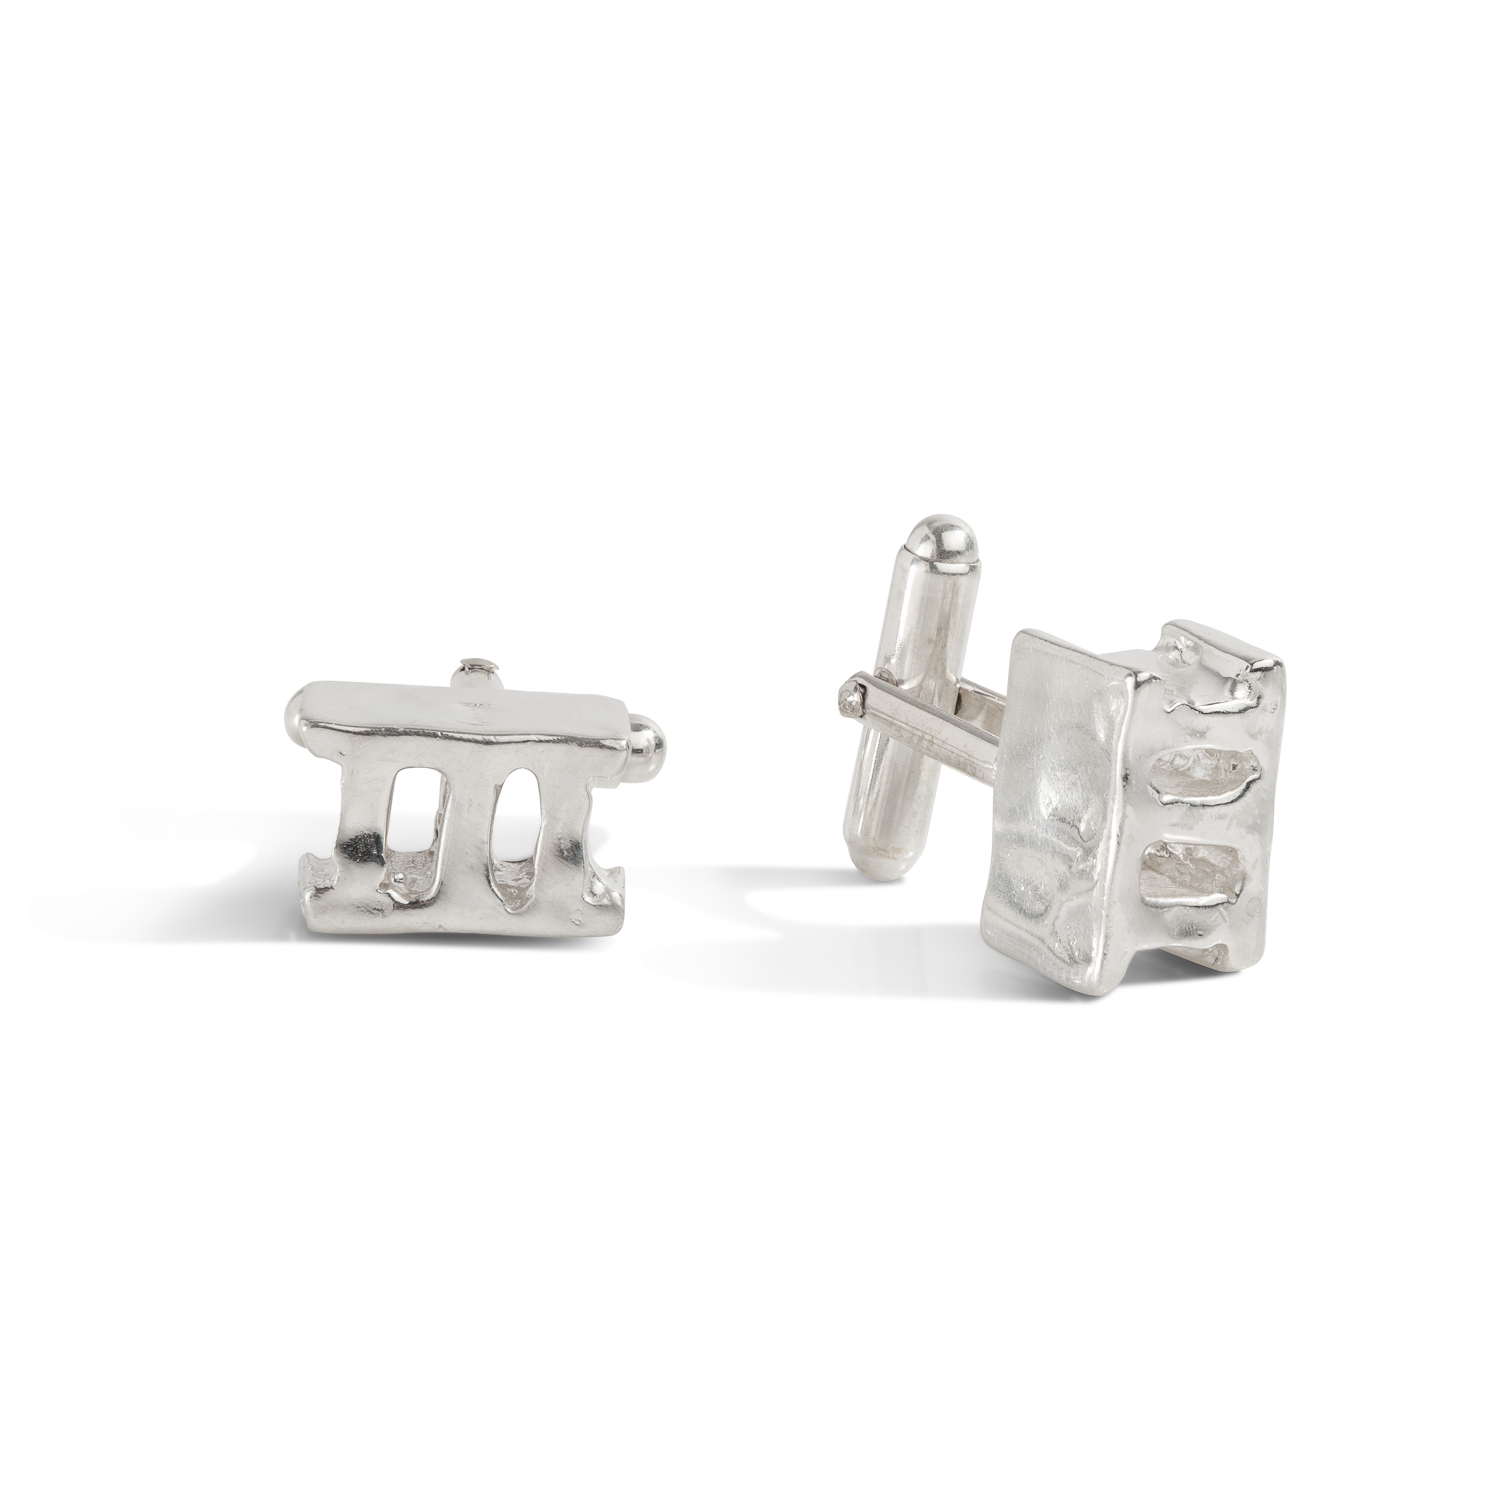 Cinder block cufflinks | sterling silver